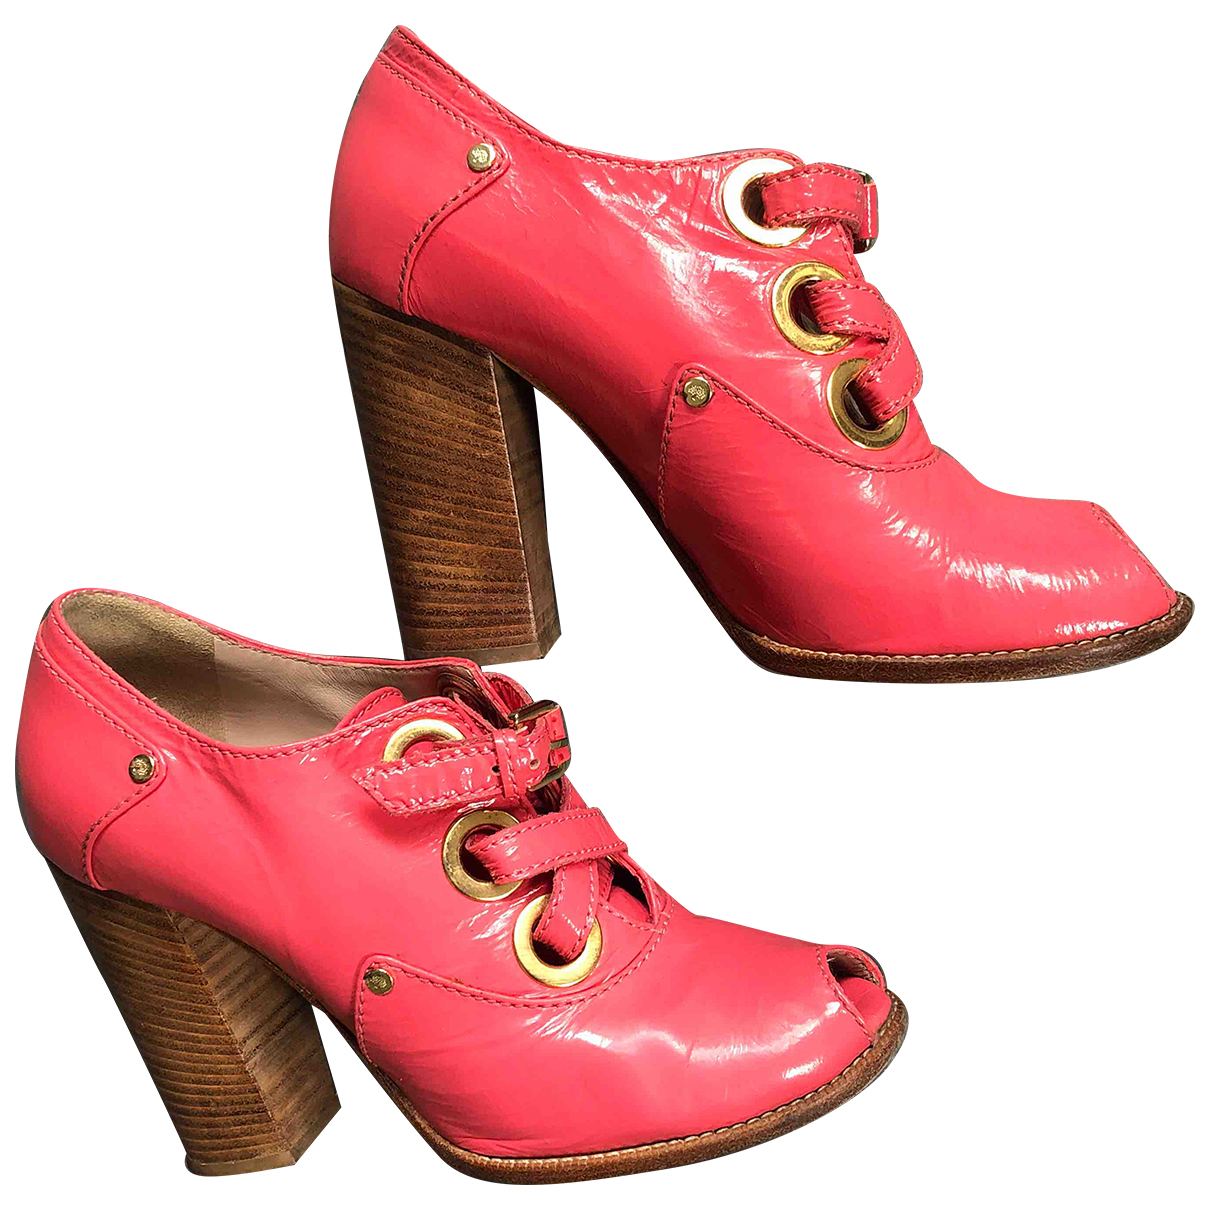 Mulberry N Pink Patent leather Ankle boots for Women 37 EU